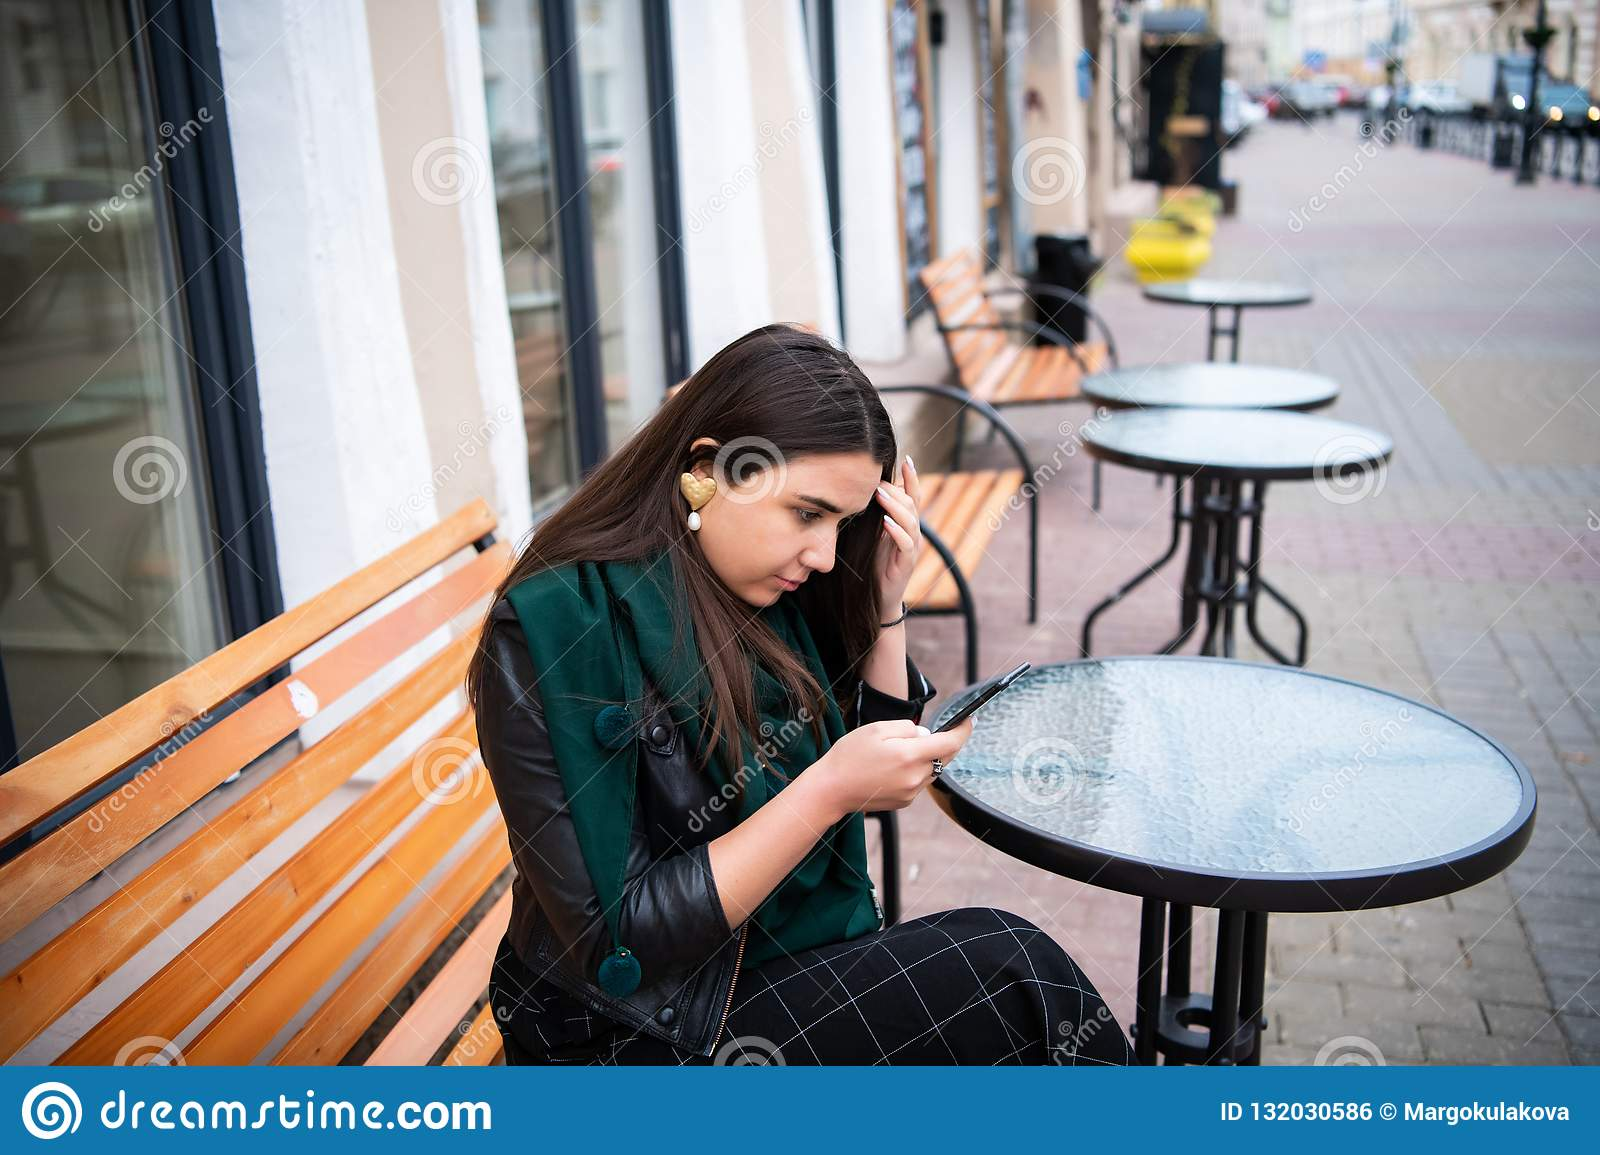 Woman looking at smartphone at street cafe feeling upset.